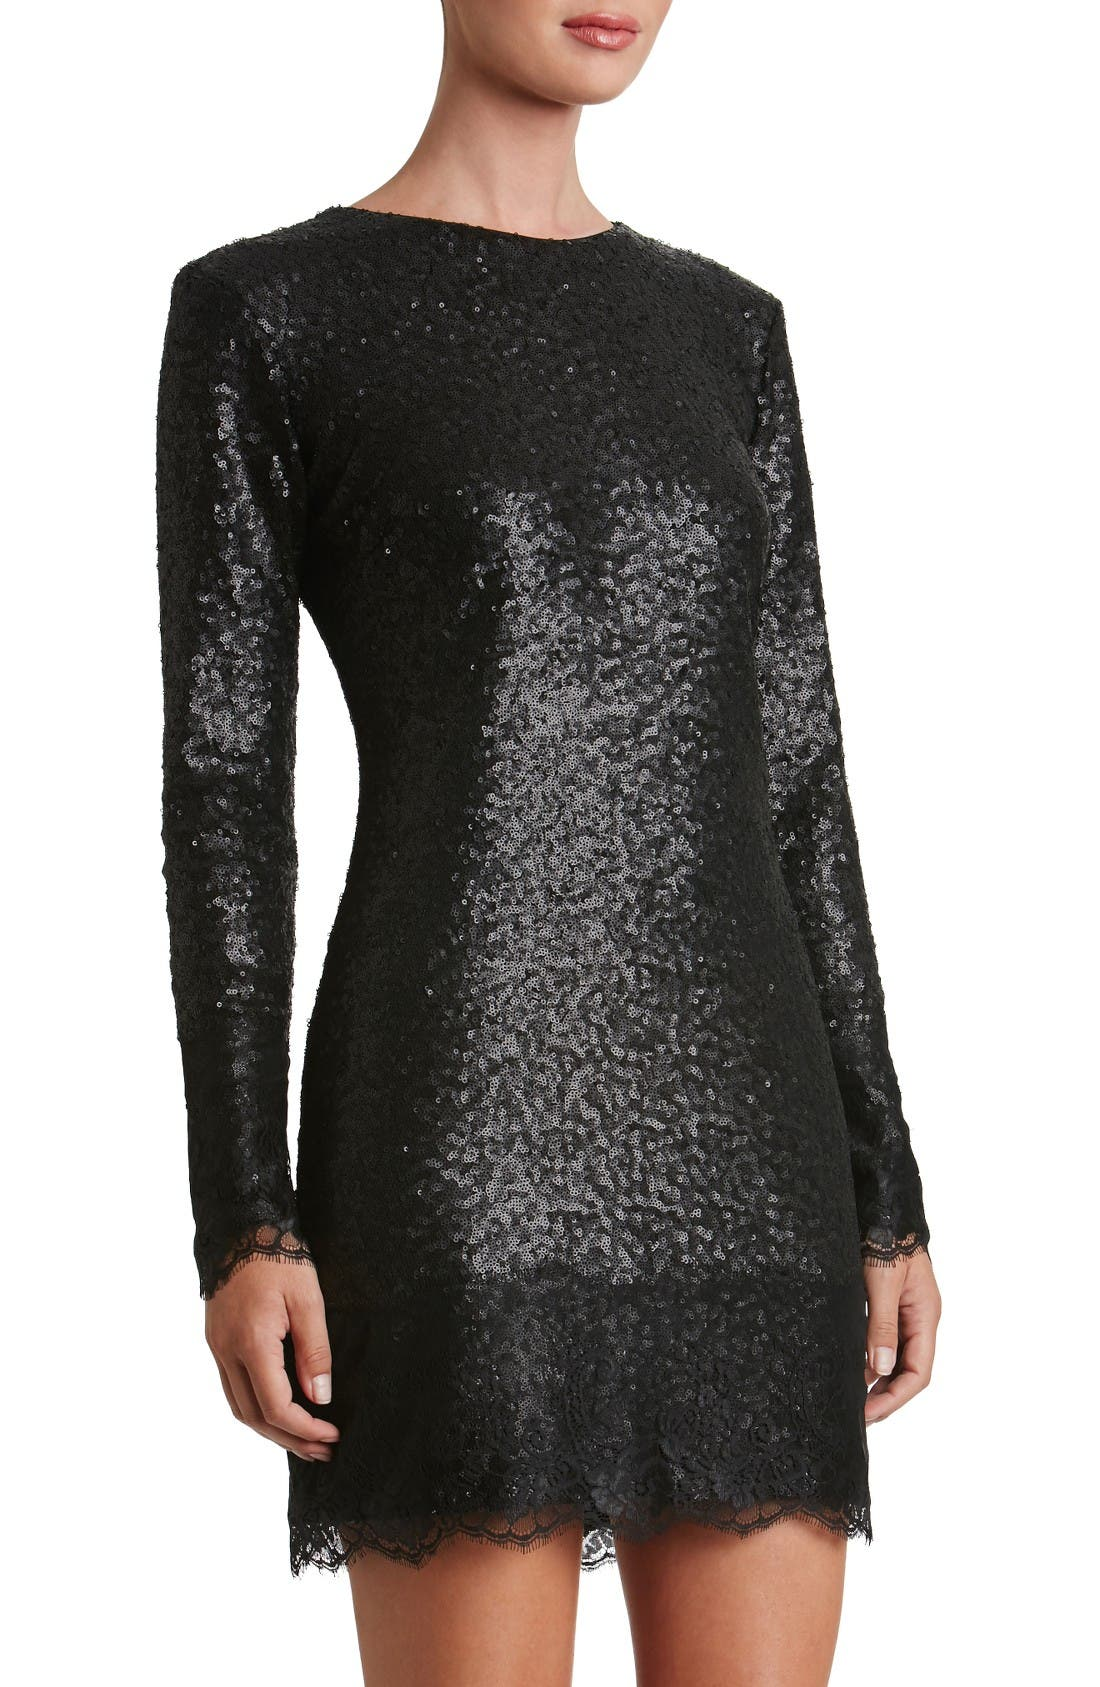 Alternate Image 1 Selected - Dress the Population Kate Lace Trim Sequin Dress